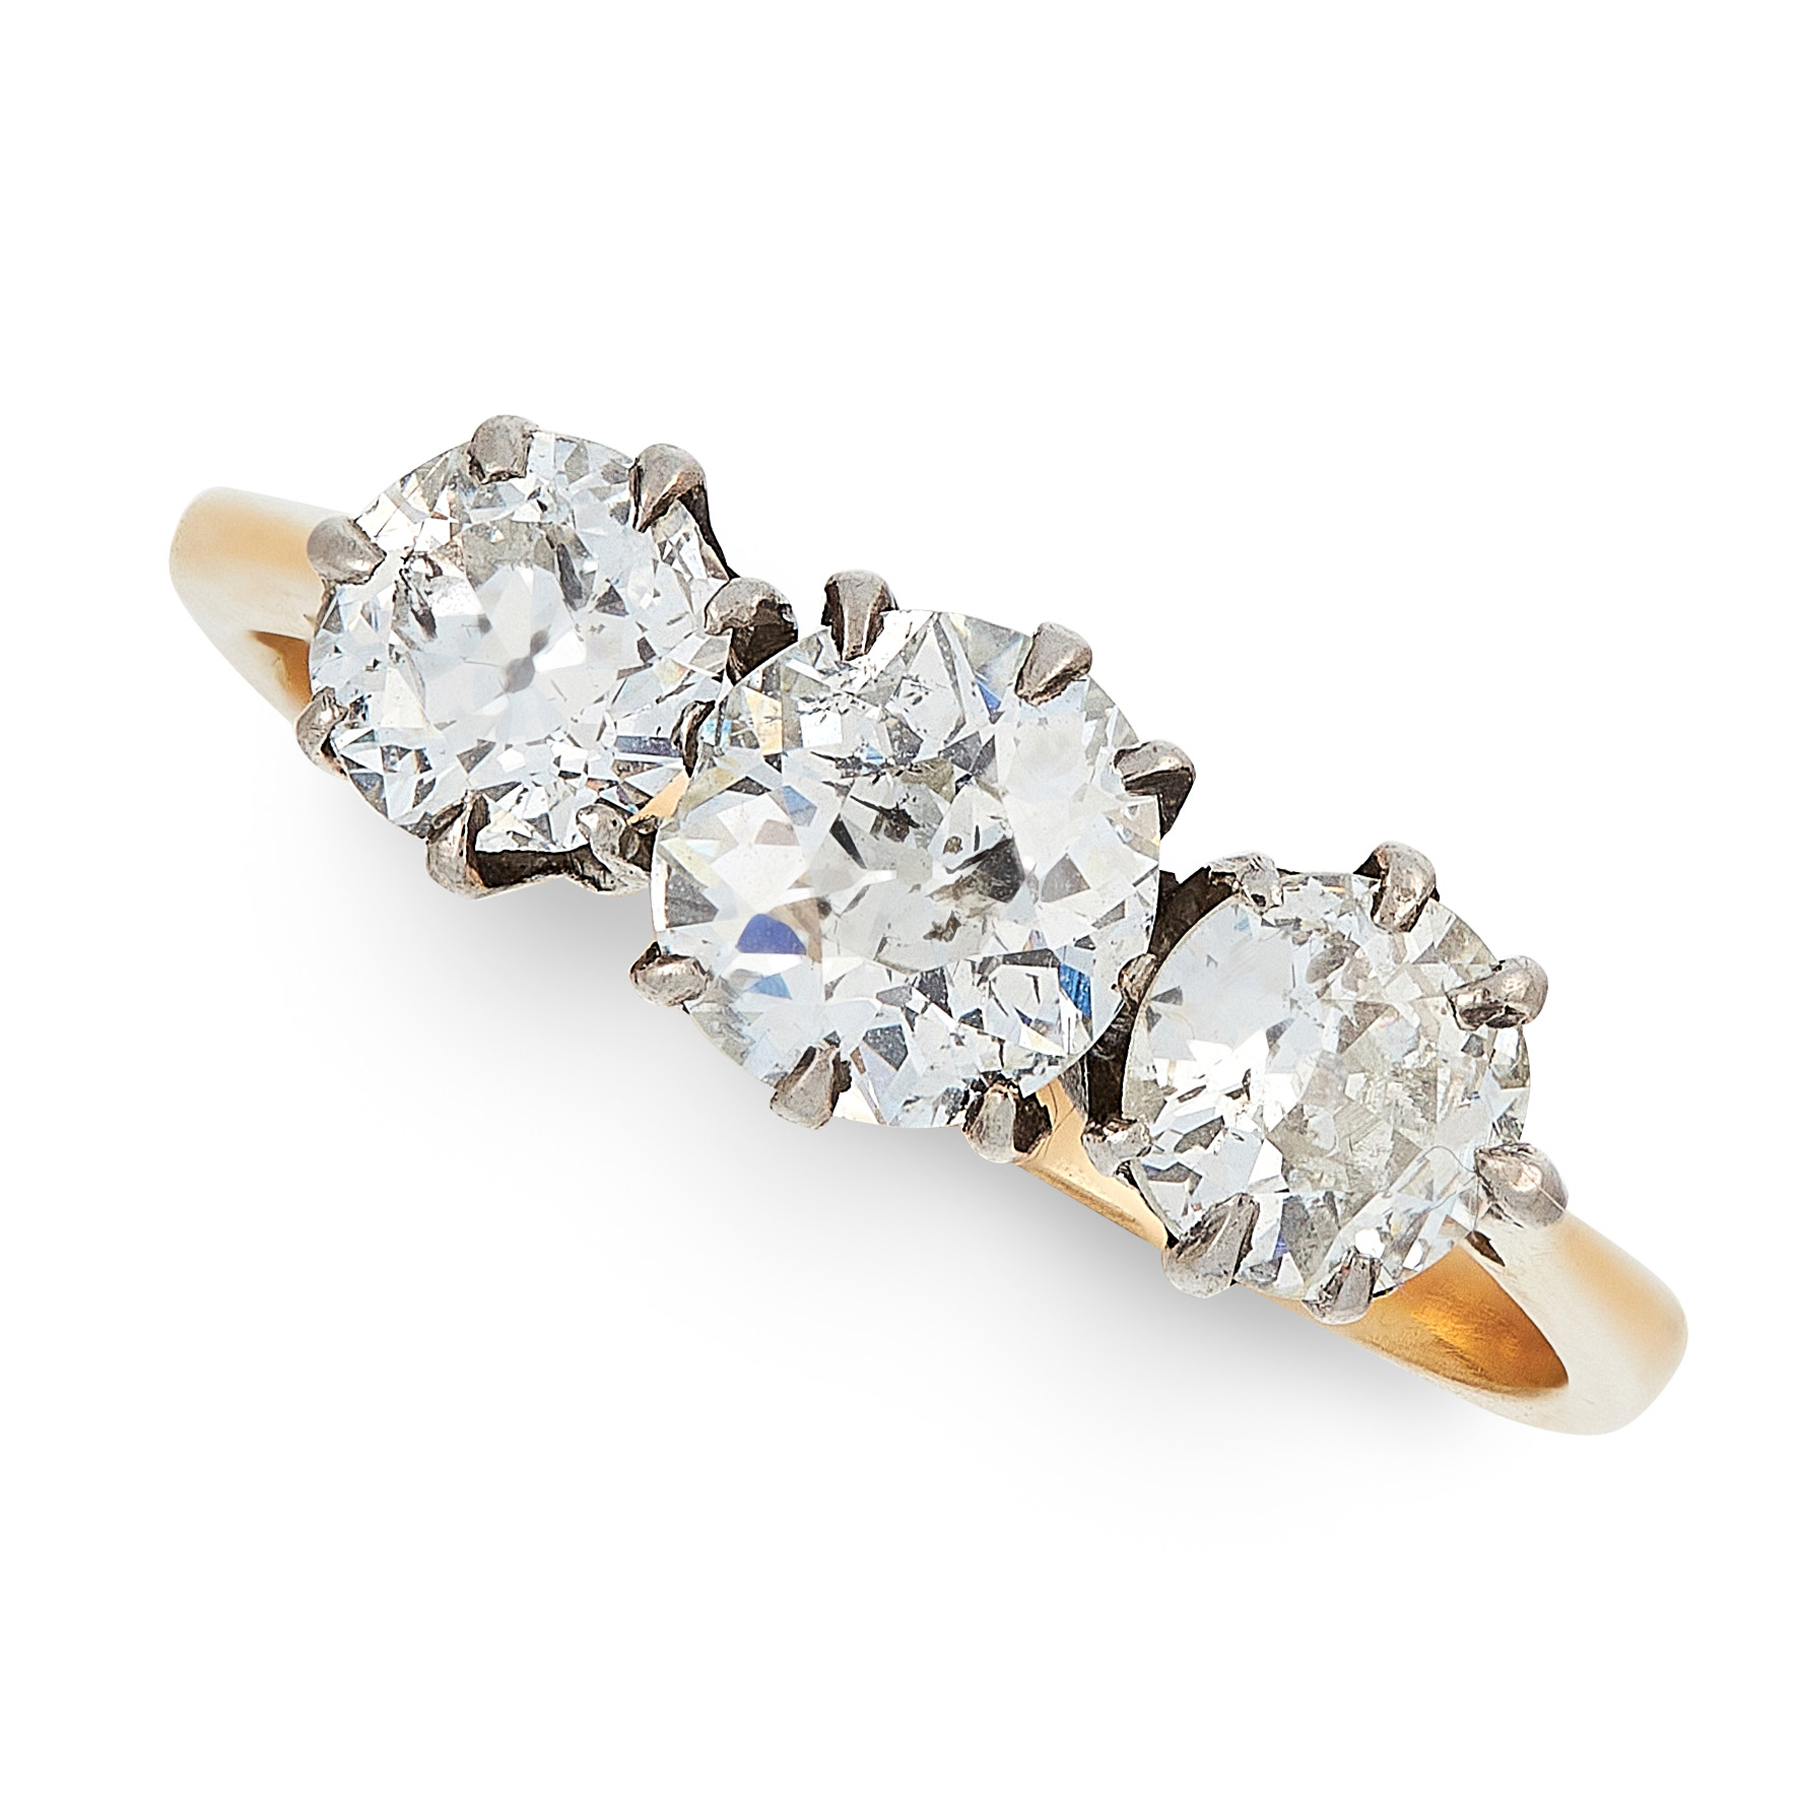 A DIAMOND THREE STONE RING, EARLY 20TH CENTURY in high carat yellow gold, set with a trio of old cut